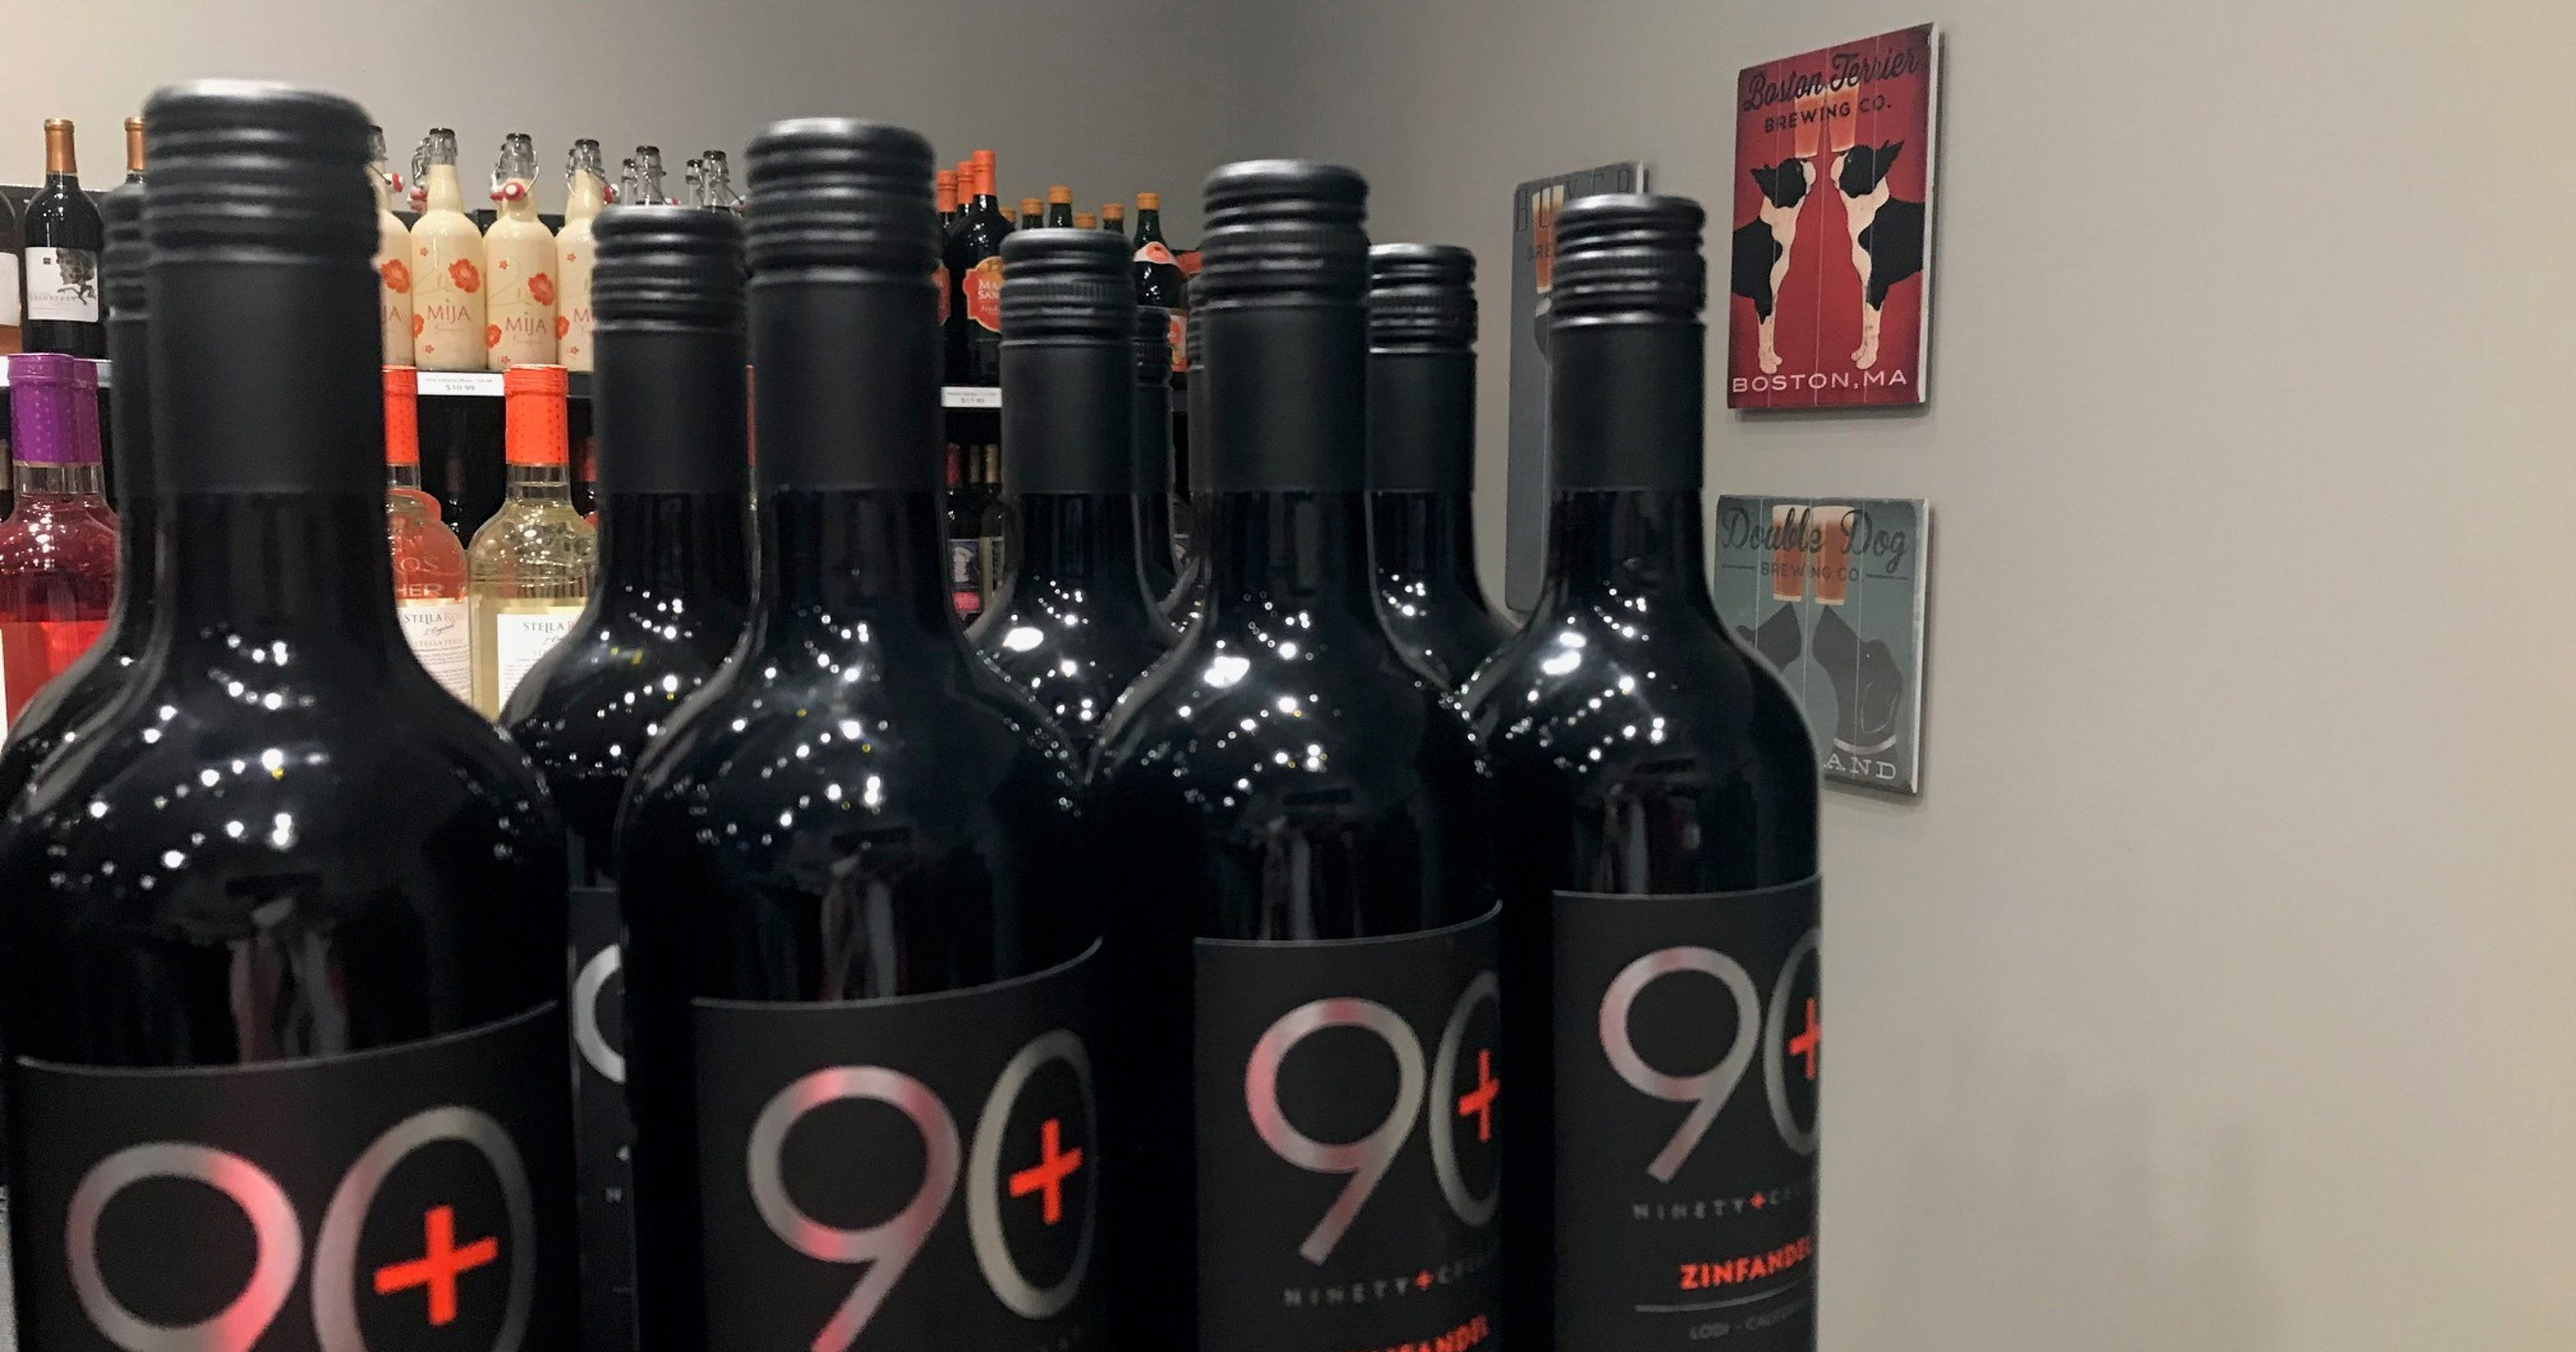 Sunday wine, liquor sales in Tennessee now official as Haslam signs bill